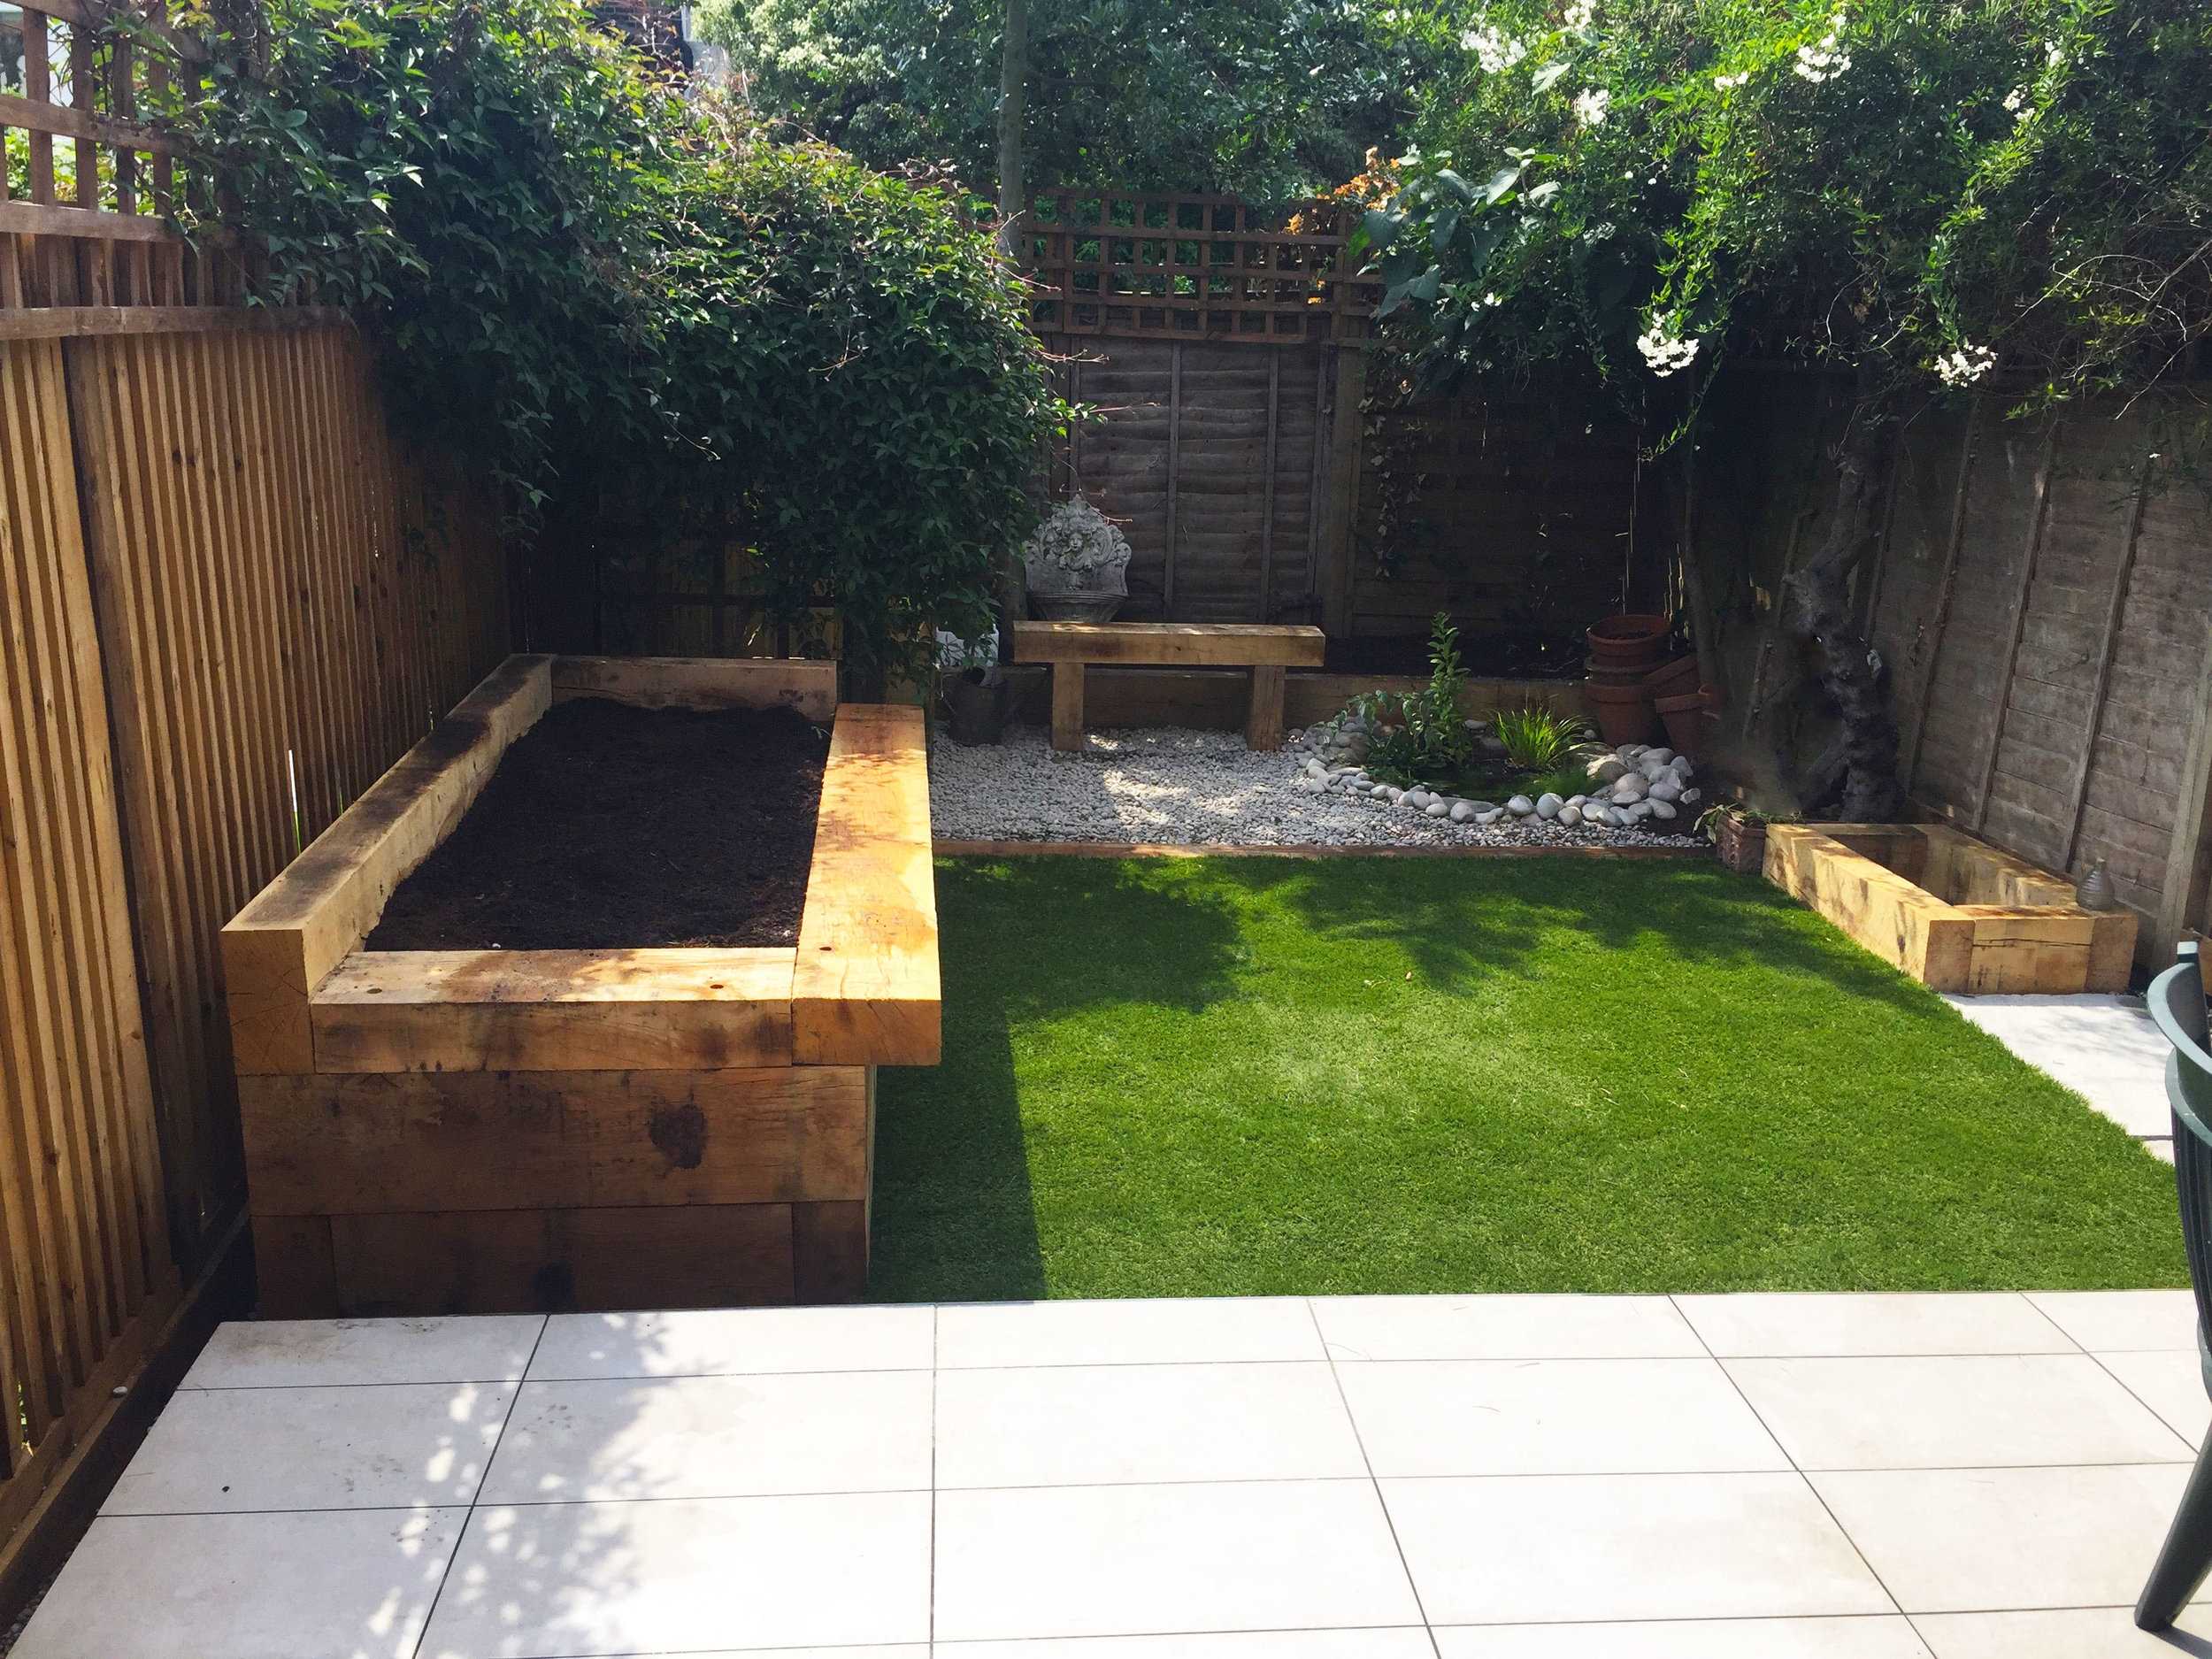 Garden-design-5-Gallagher-gardens---Landscaping-Oxford.jpg